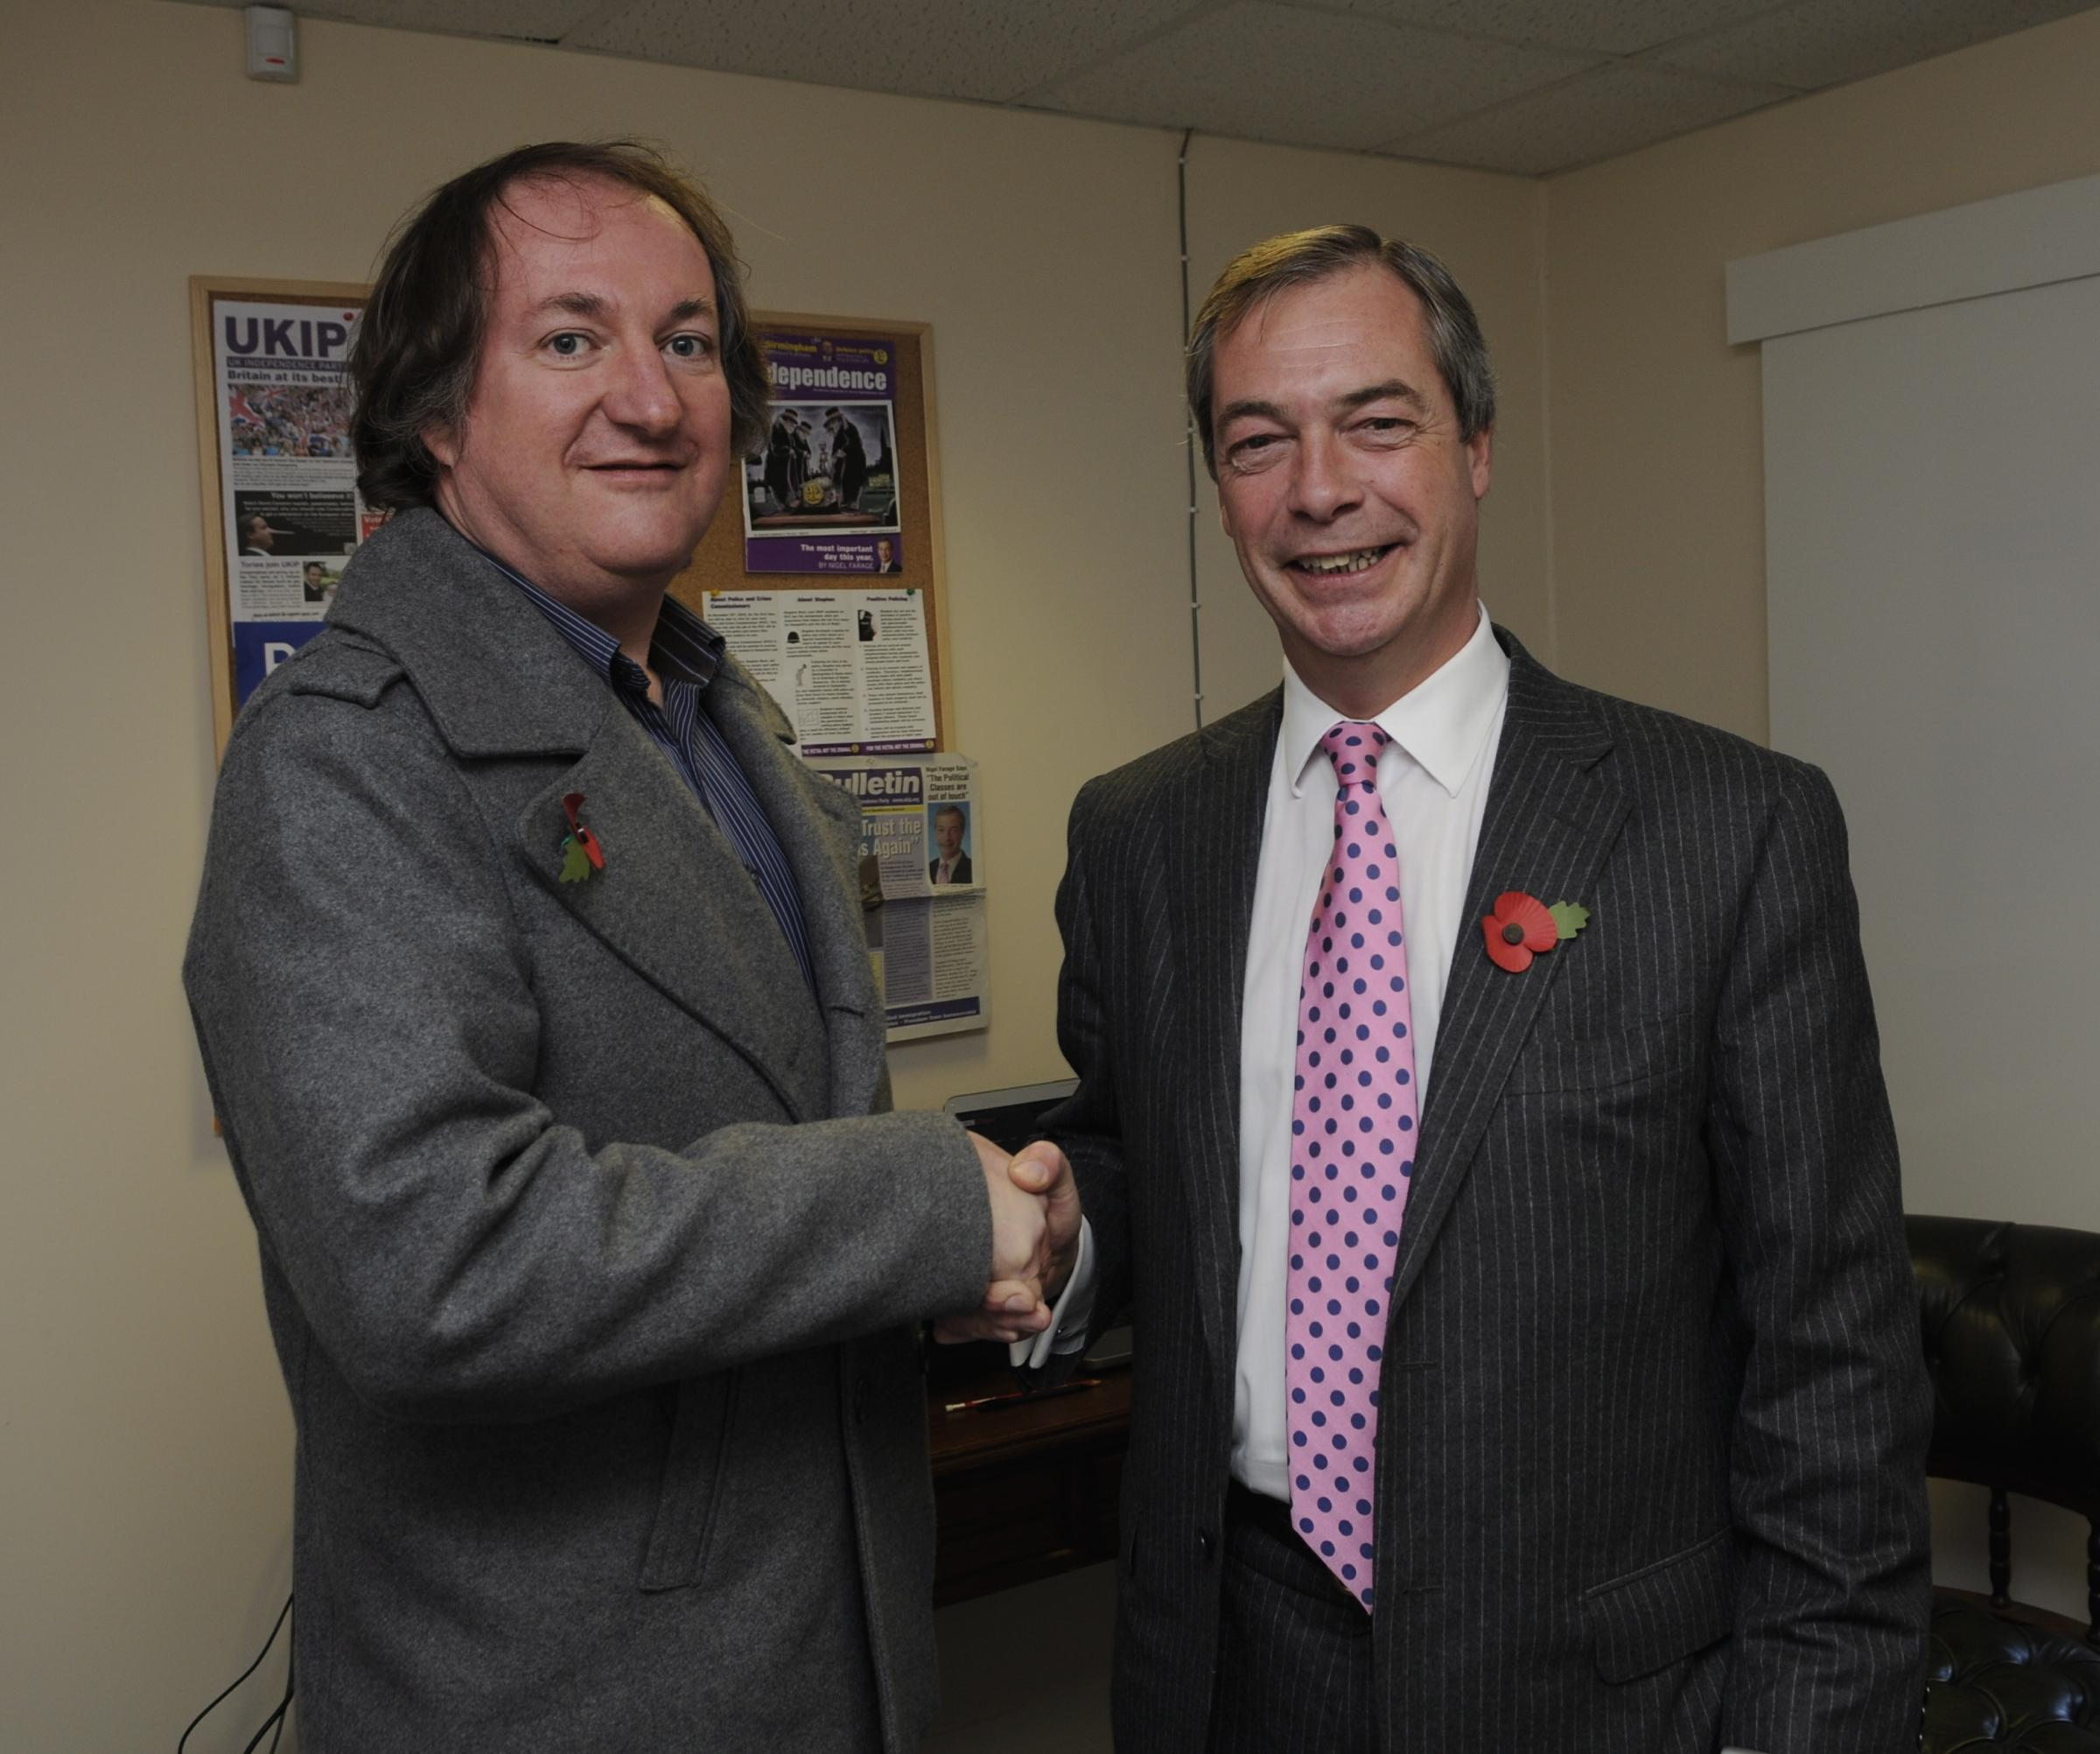 Alan Stone, left, with UKIP leader Nigel Farage.